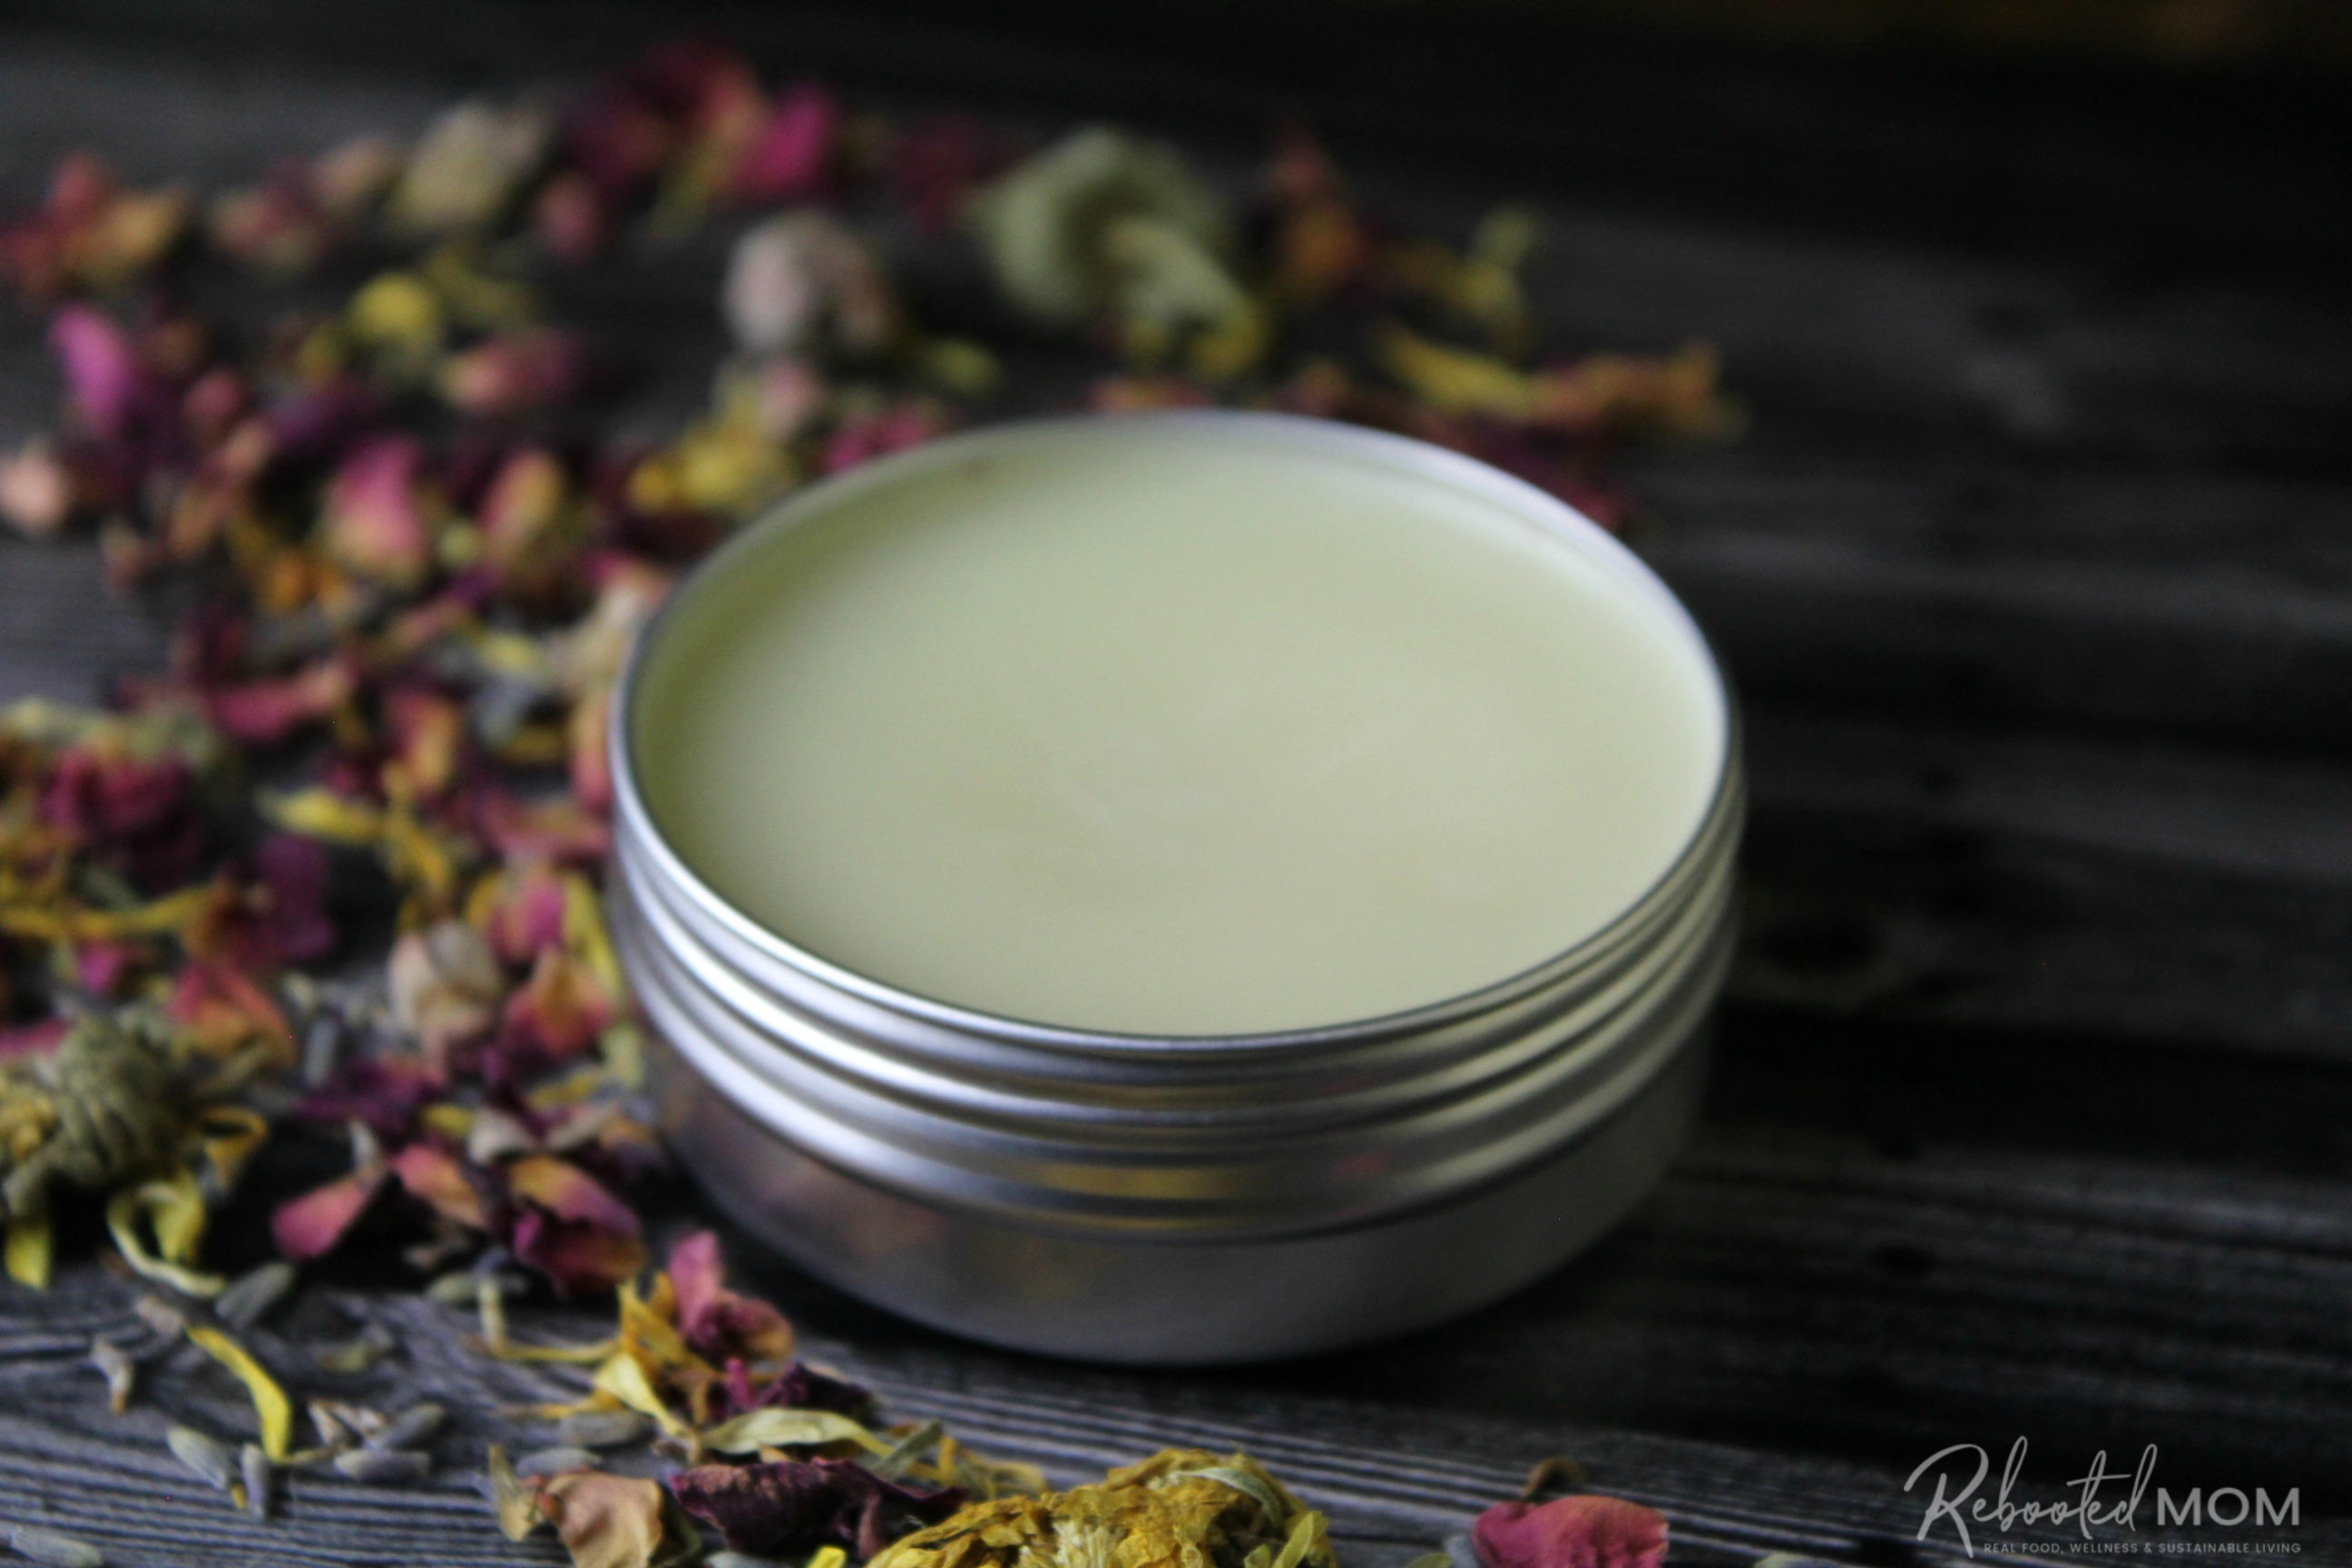 This herbal tallow balm is wonderful for supporting healthy skin and is easy to make at home with a few simple, skin-nourishing ingredients!  #tallow #beauty #balm #herb #herbal #herbinfused #beautybalm #skincare #DIY